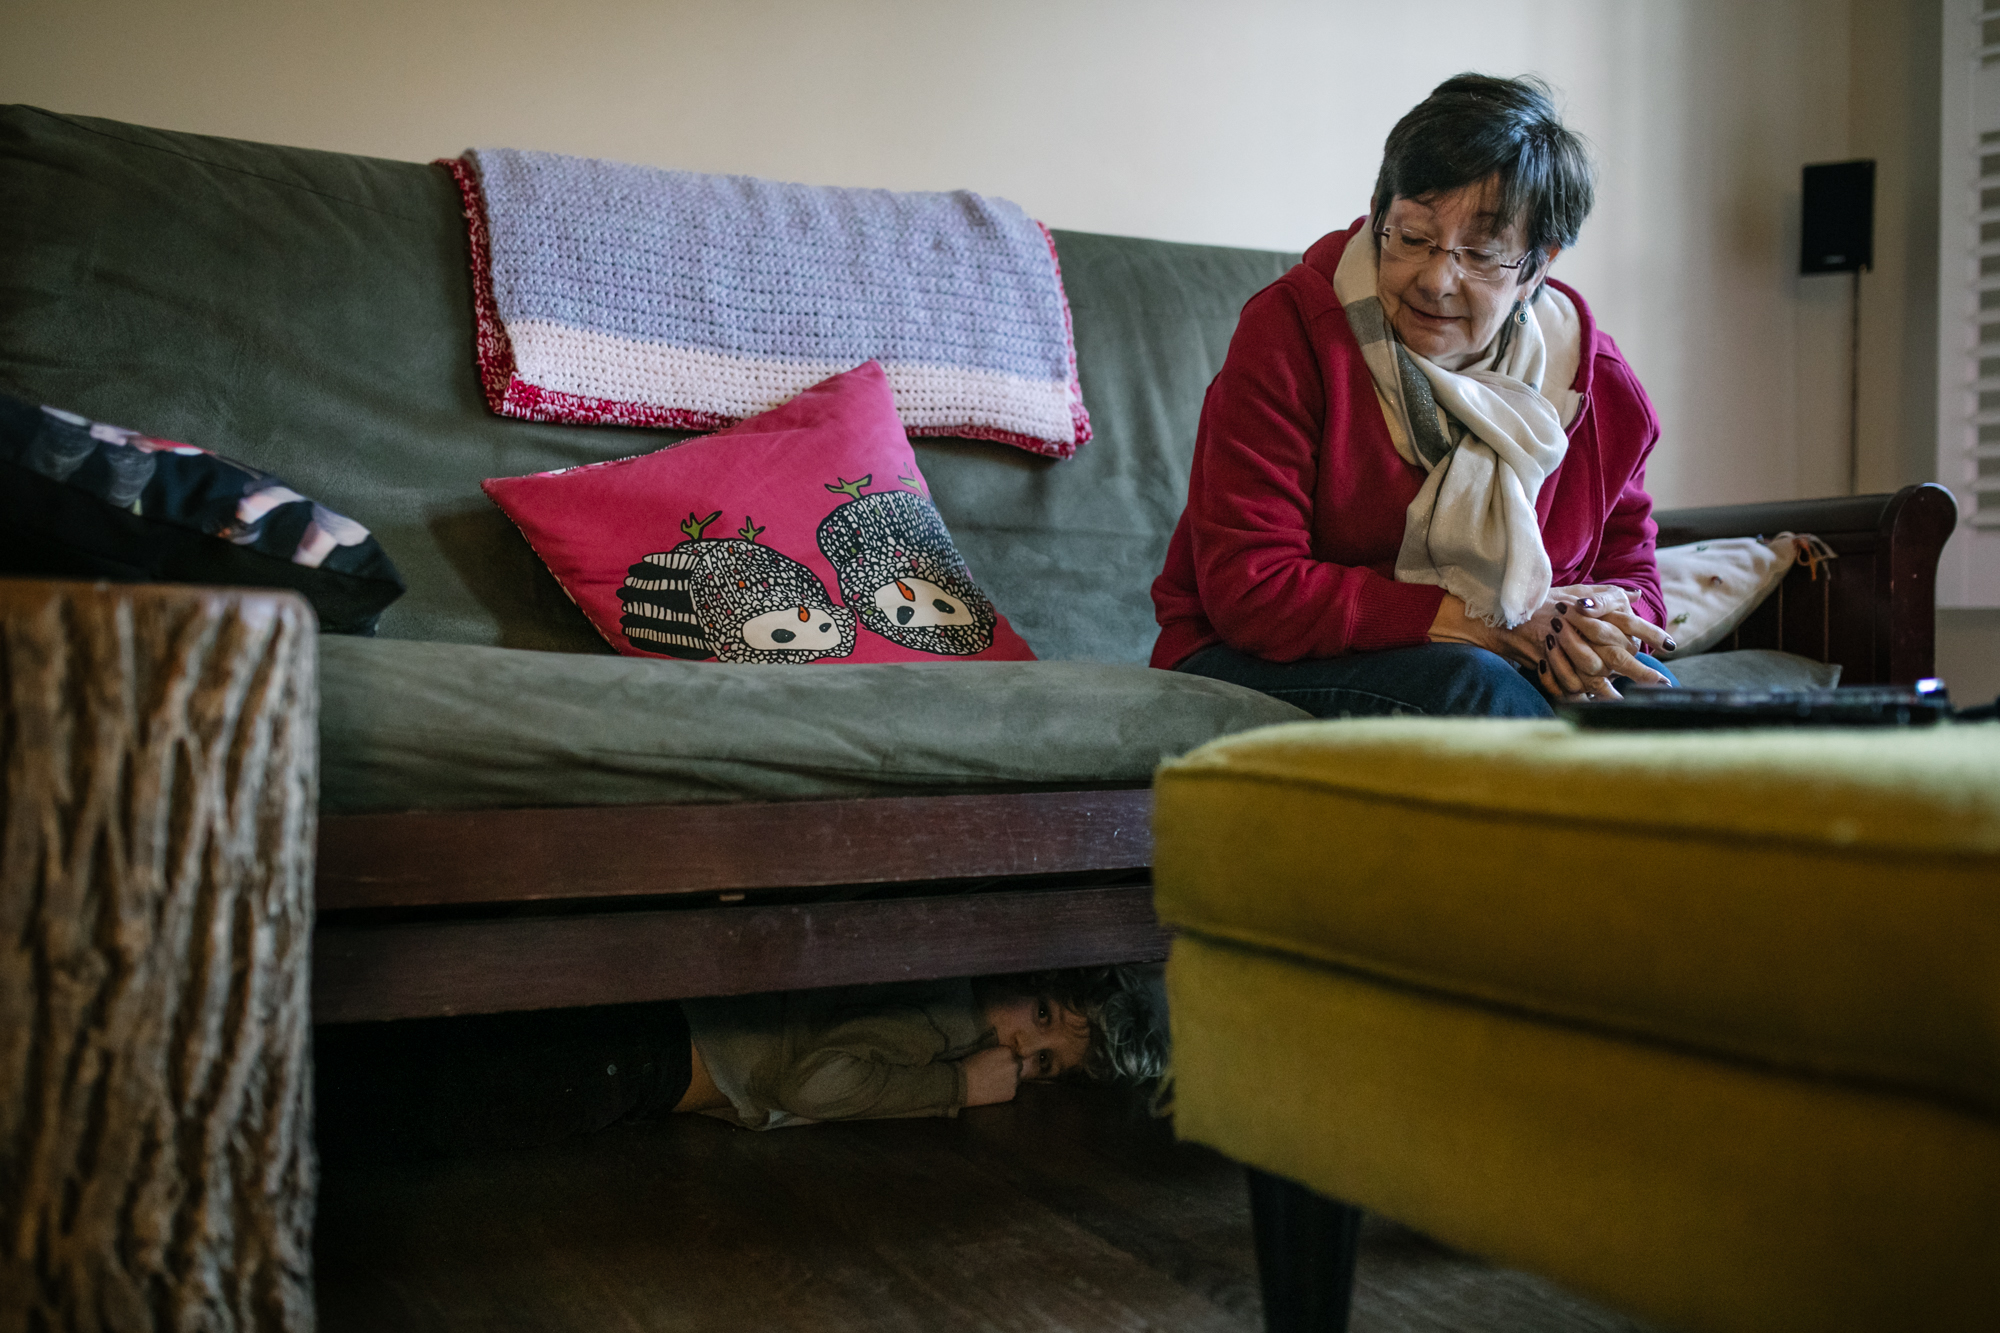 An older woman sits on a couch as a boy hides underneath